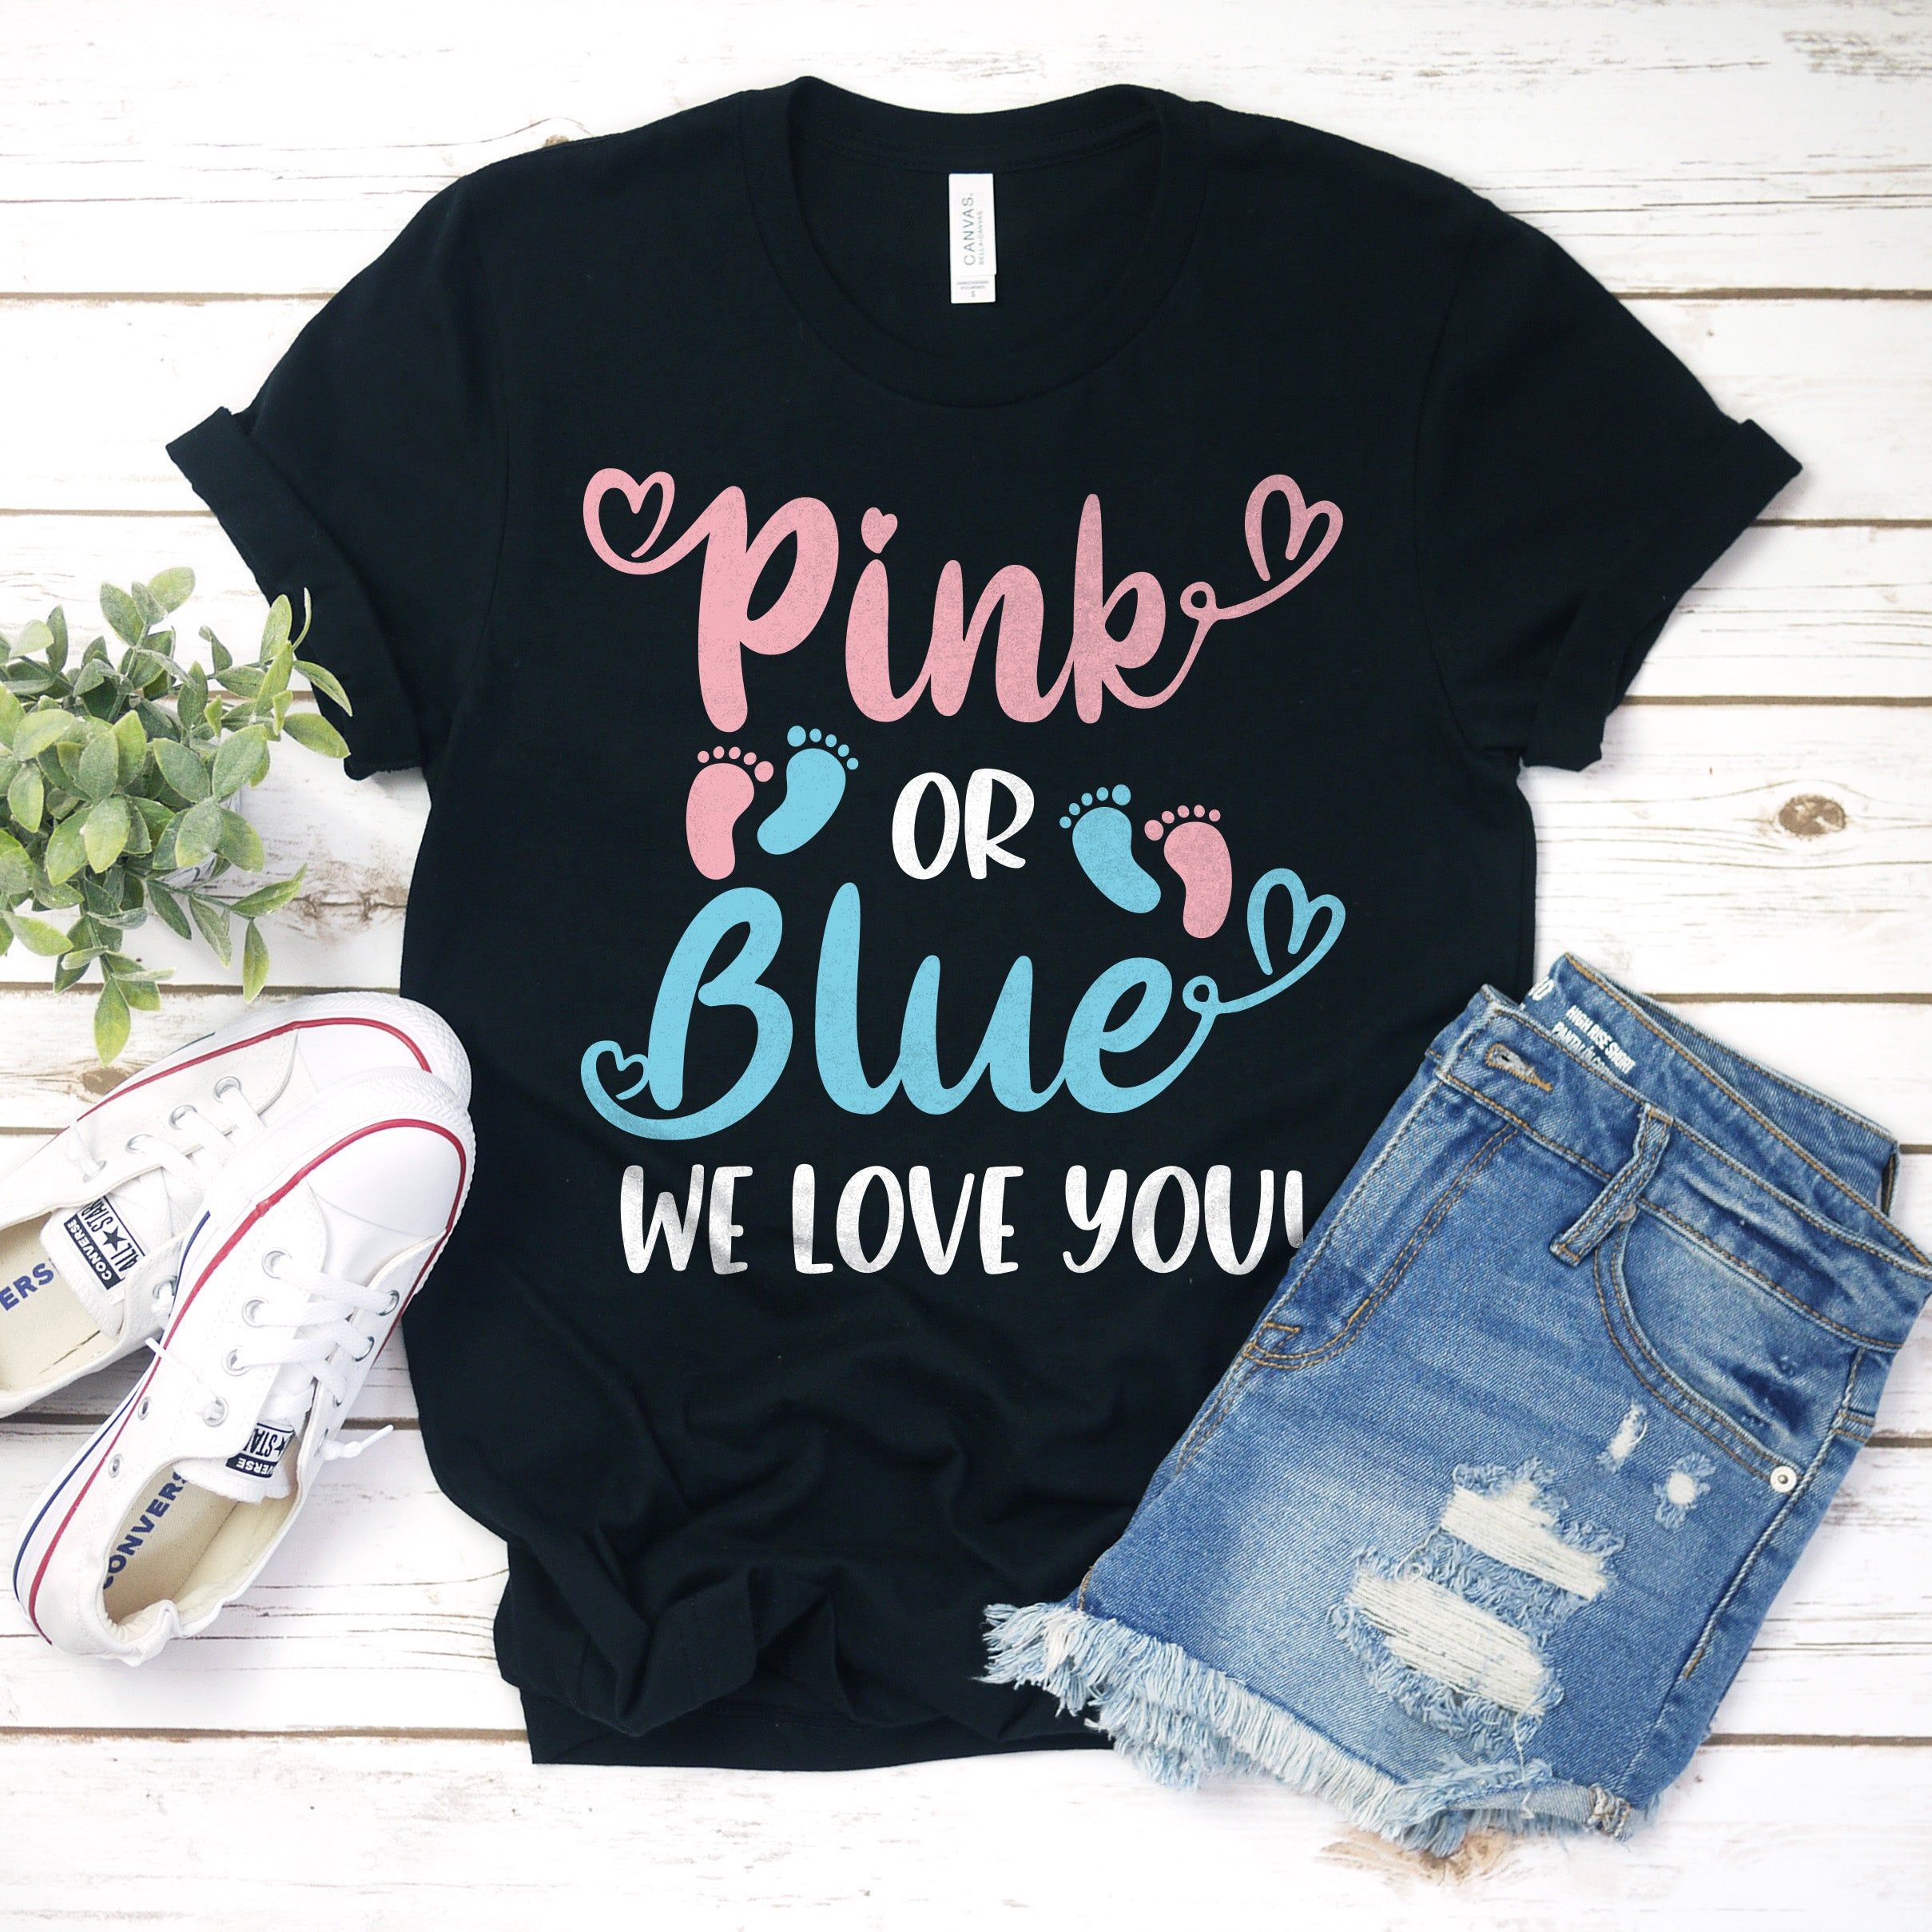 Pink or Blue We Love You Gender Reveal Shirt - Pink or Blue Shirt - Gender Reveal Party Shirt